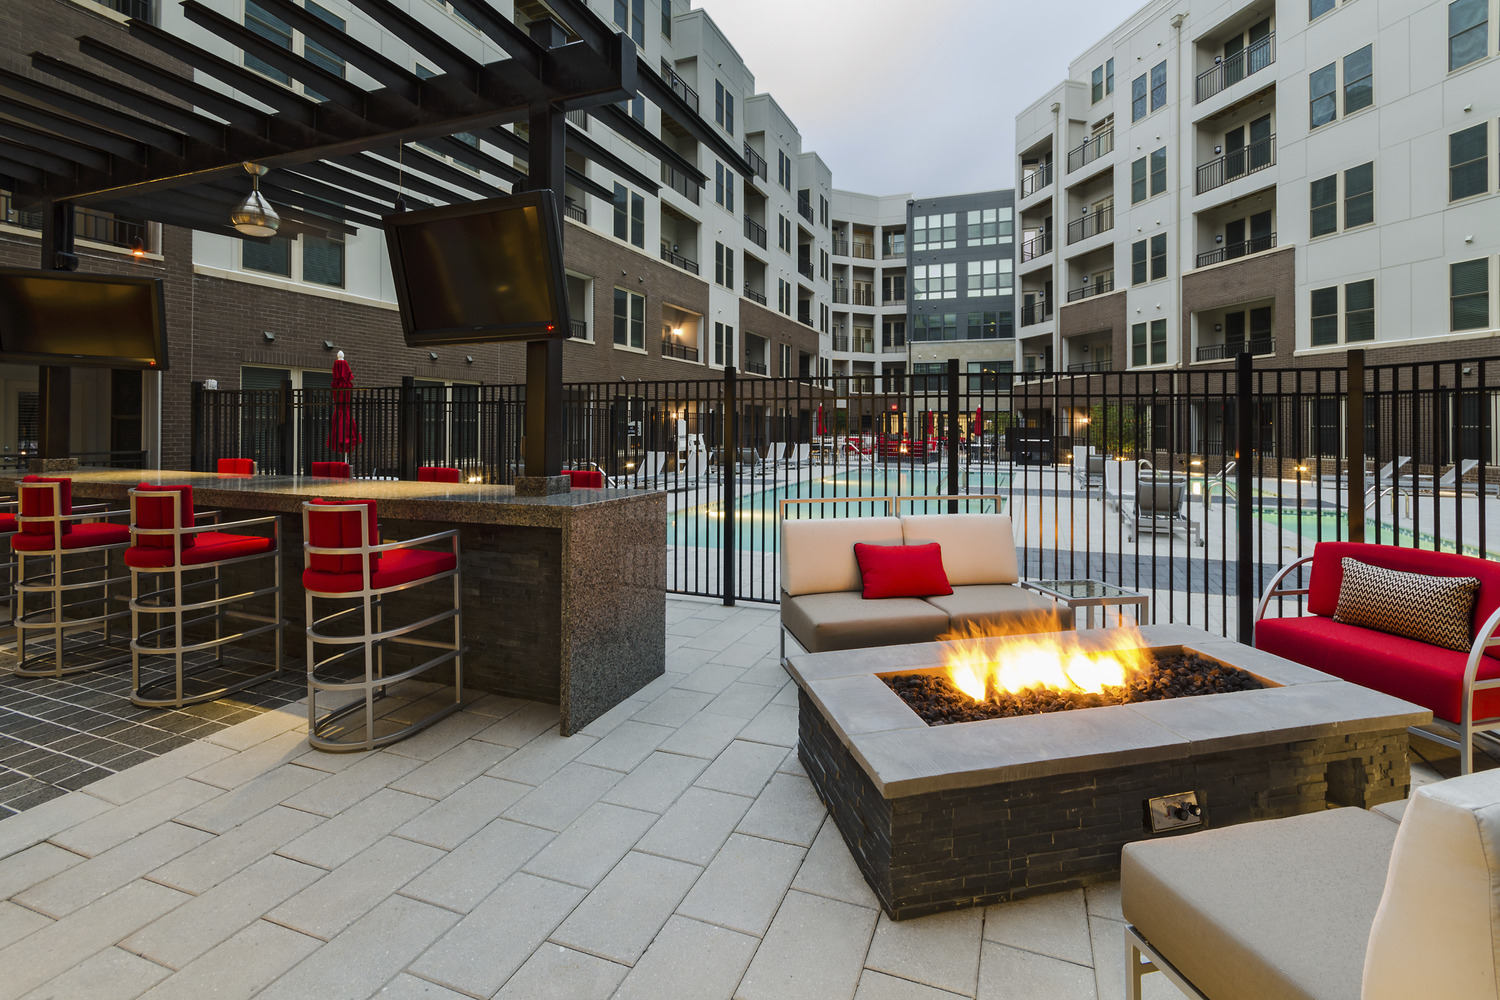 CBG builds Bell Del Ray, a 276-Unit Luxury Residential Community with Cast-in-Place Garage in Alexandria, VA - Image #6